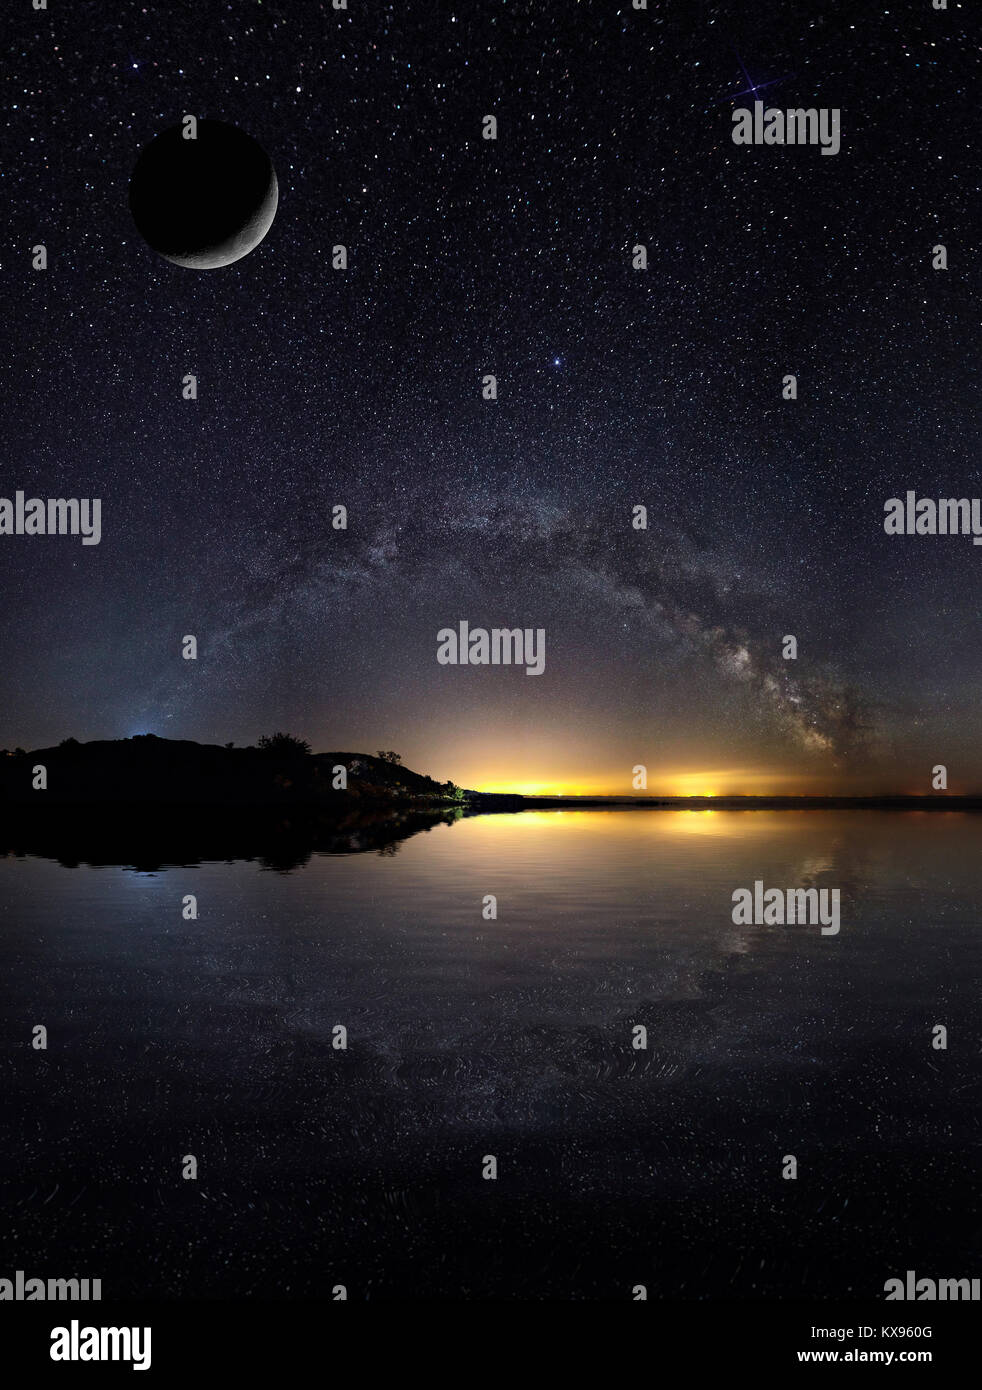 Amazing Panoramic Landscape view of a Milky Way. Milky Way over the lake. - Stock Image